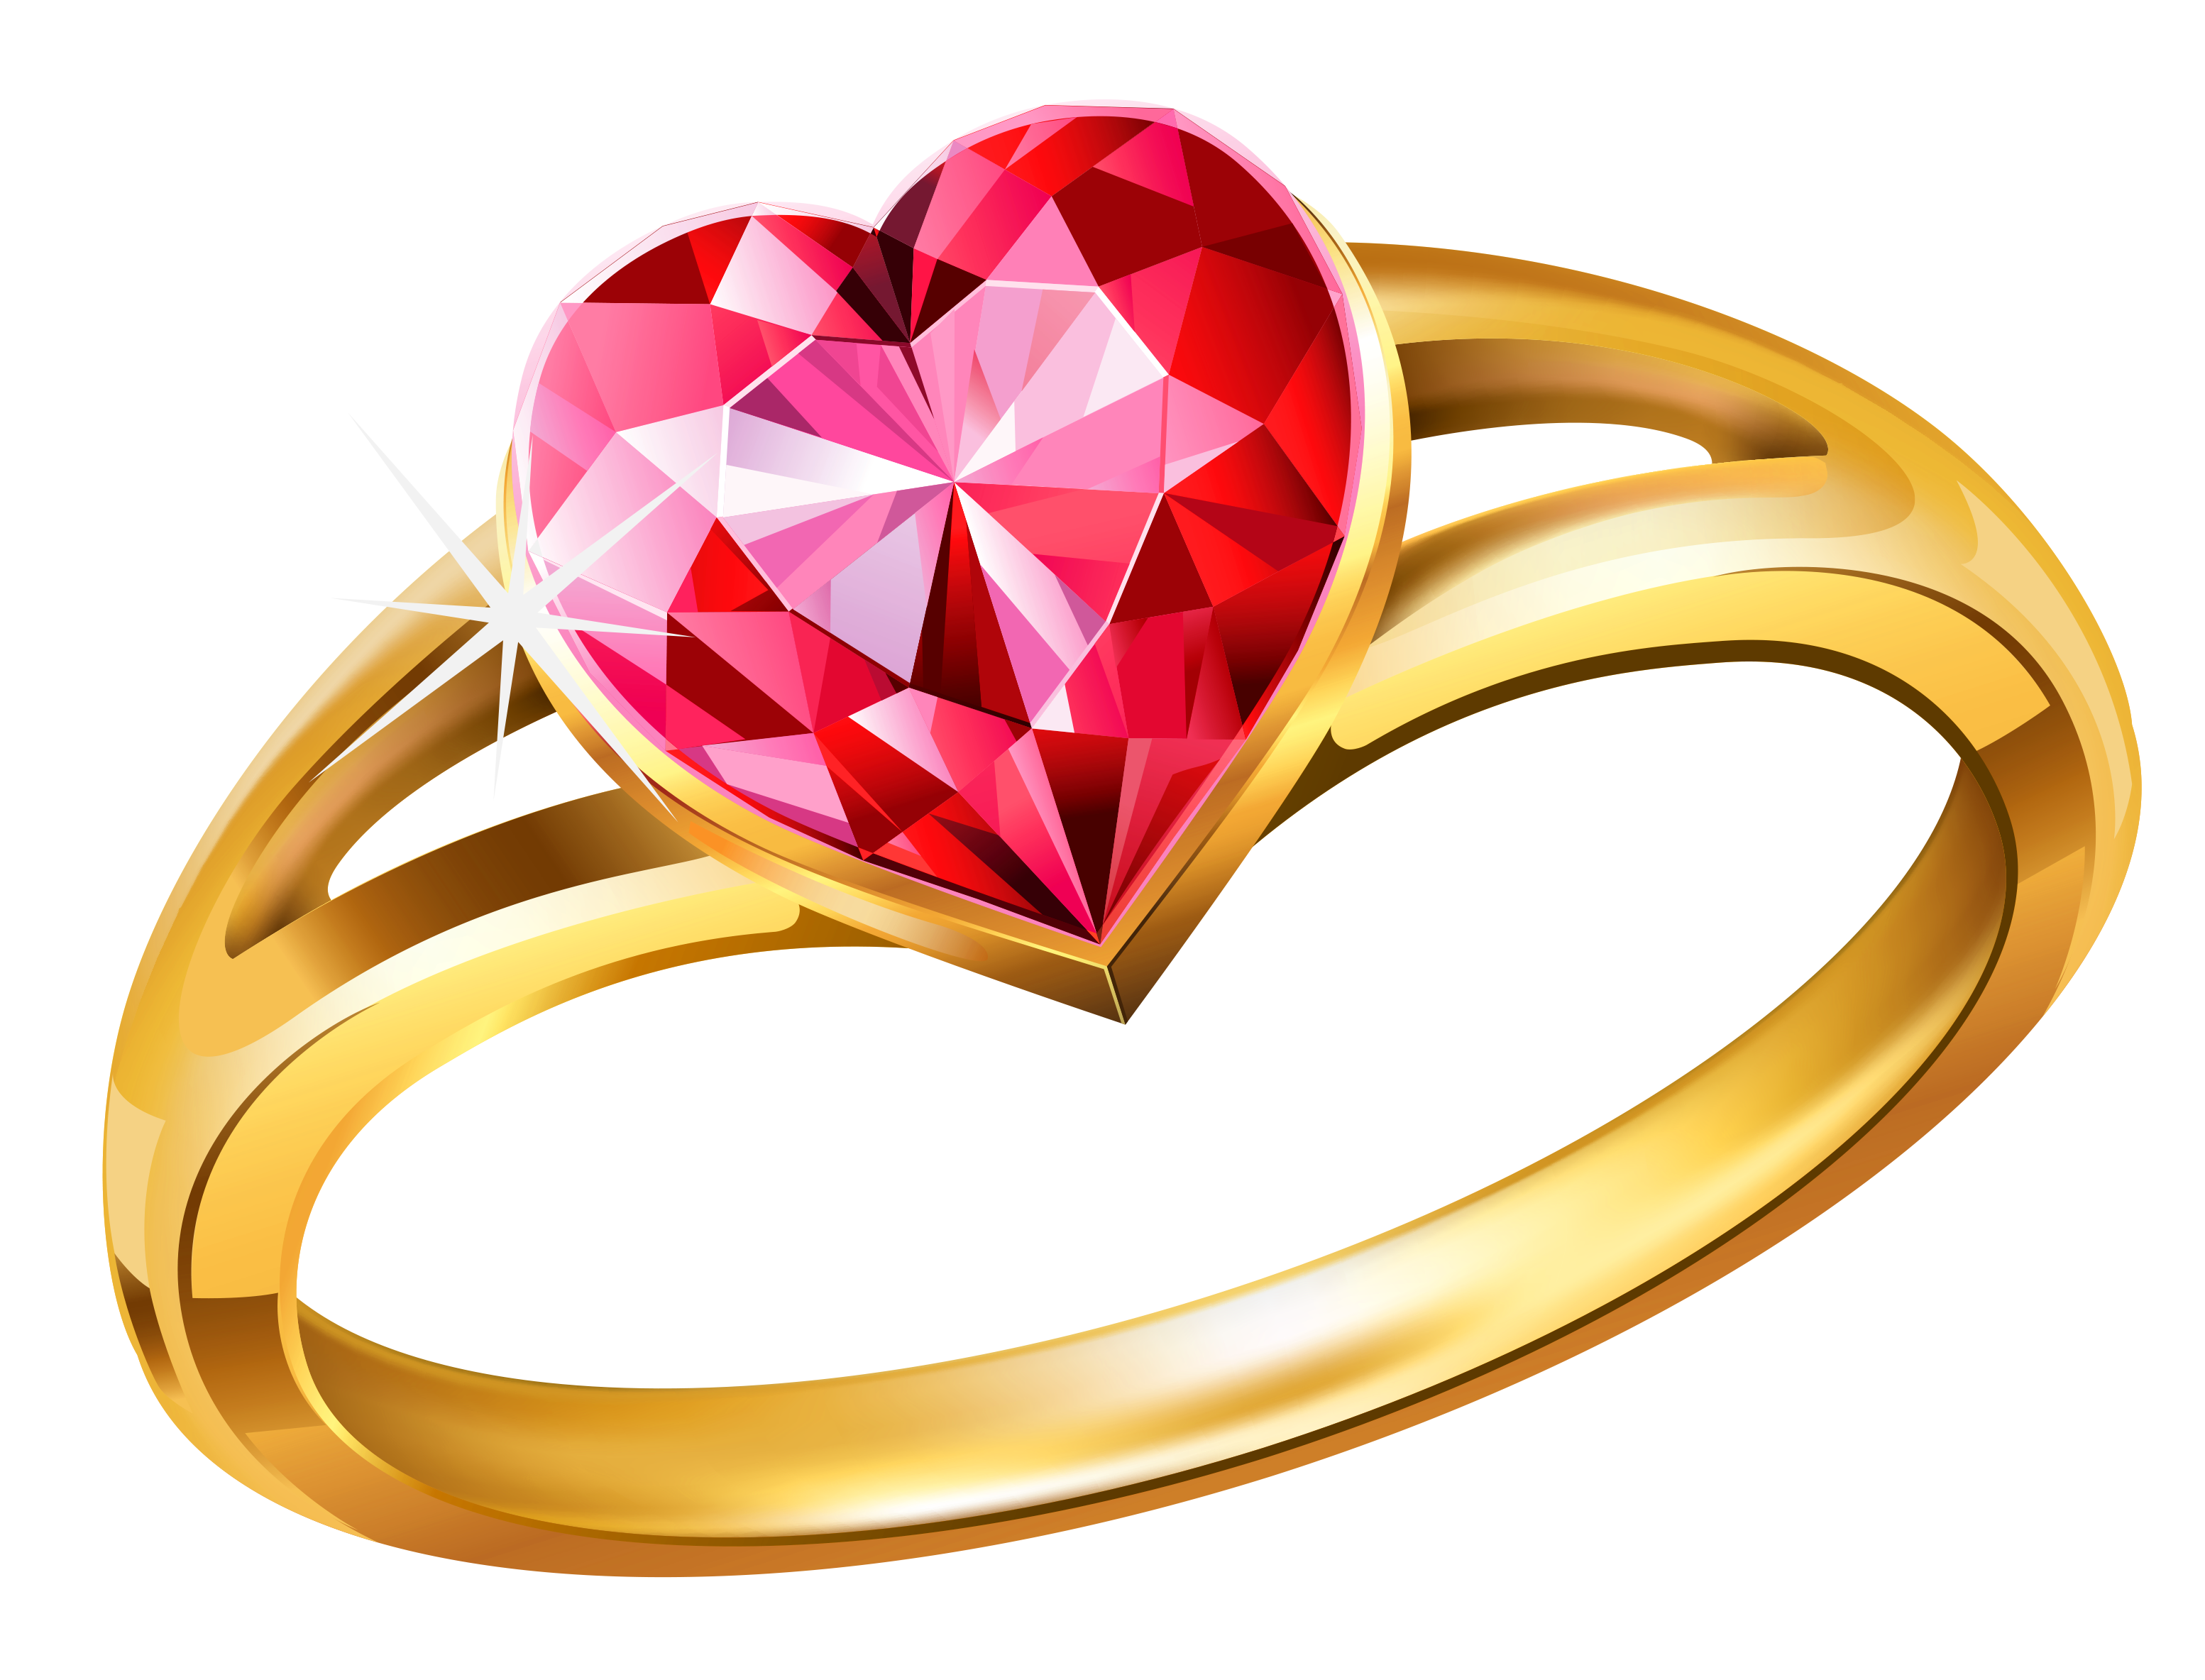 png freeuse library Gold ring with pink. Supermarket clipart coloring page